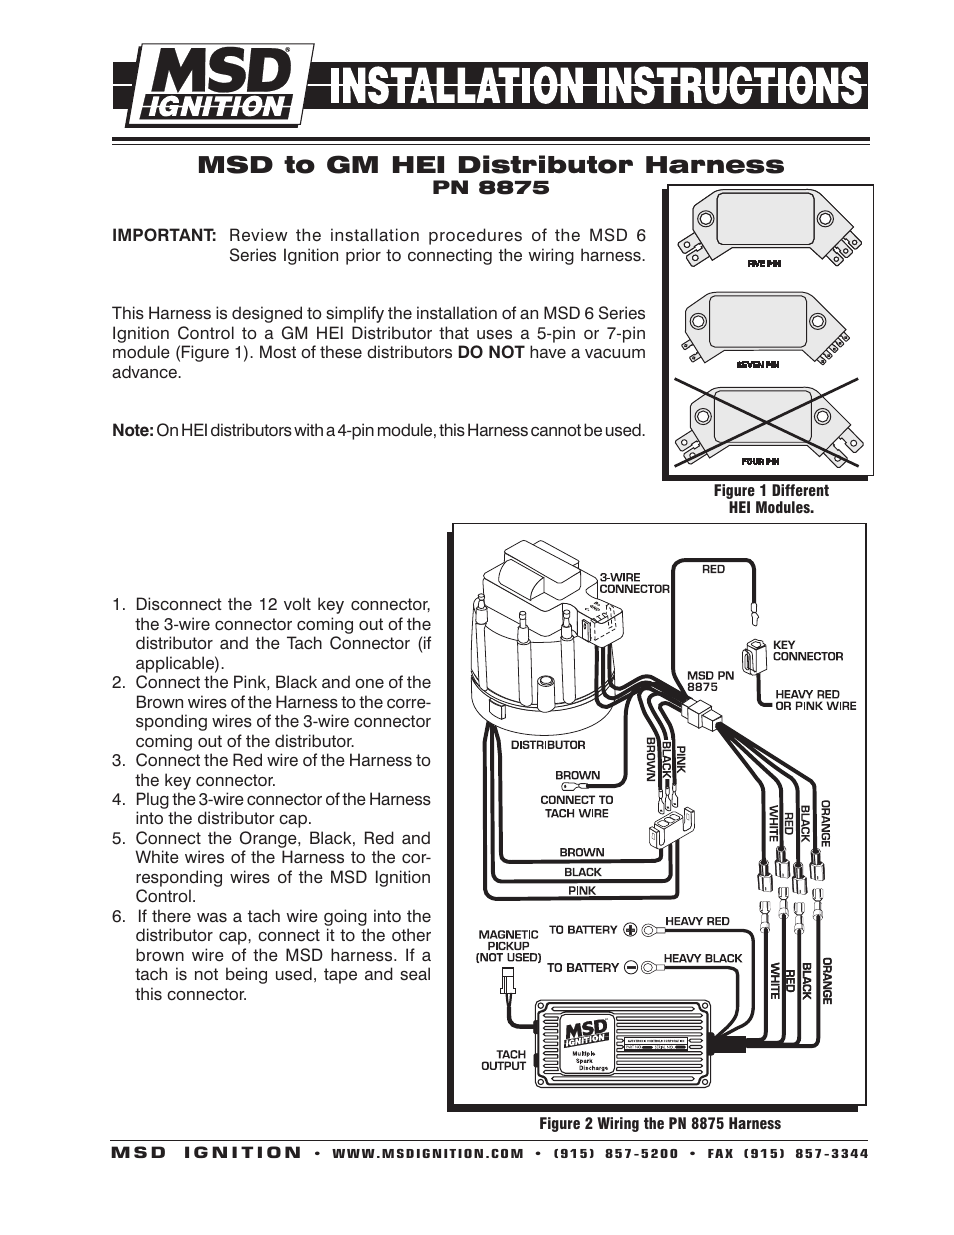 gm hei distributor wiring diagram only free download gm hei module wiring diagram 1994 msd 8875 wiring harness, gm hei installation user manual ...